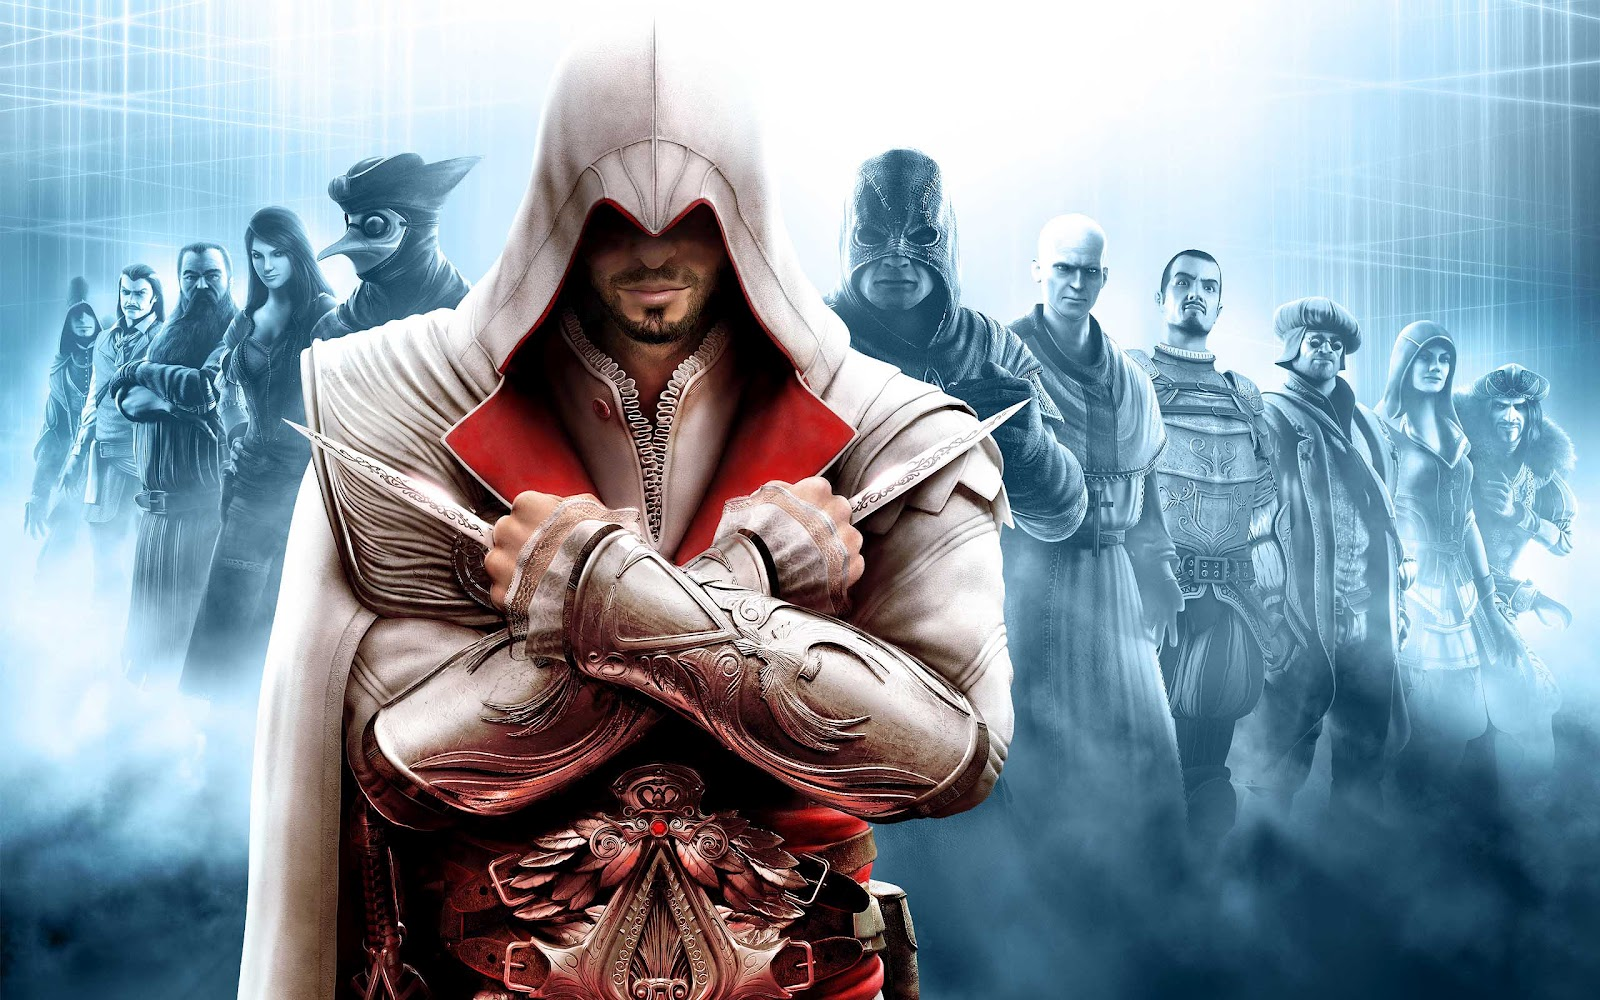 http://4.bp.blogspot.com/-AbFSNasa2Uo/UEHbYtQEu7I/AAAAAAAAFlY/THwsEH03gFo/s1600/hd-game-assassins-creed-brotherhood-wallpaper-hd-game-assassins-creed-achtergrond-spel.jpg